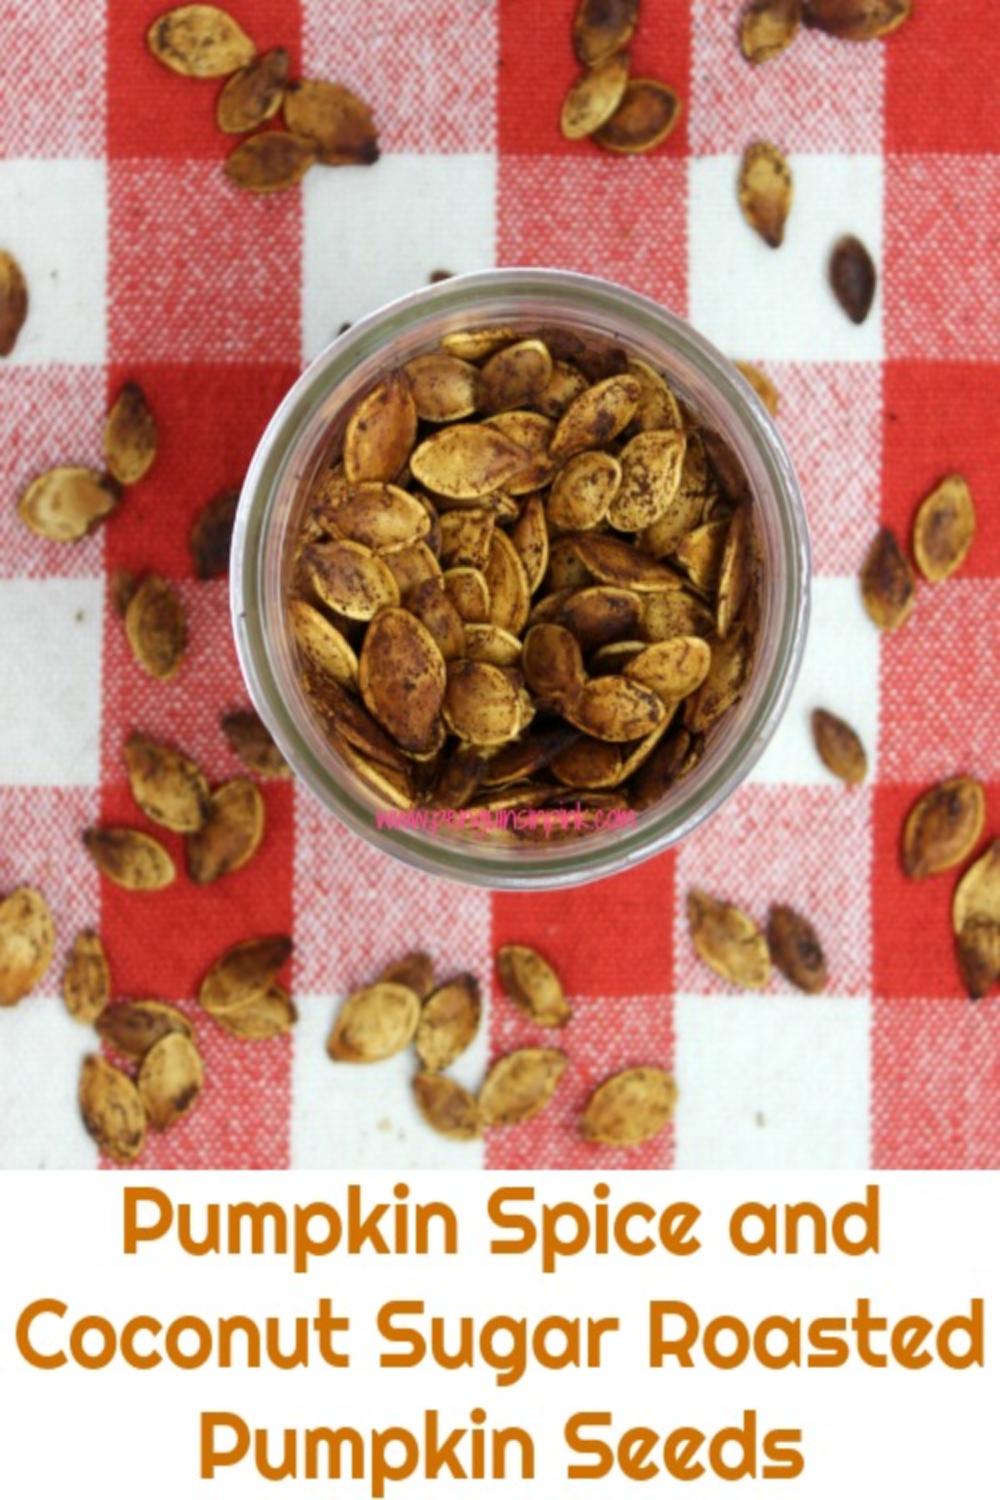 Pumpkin pie spice and coconut sugar combine with coconut oil to make these slightly sweet and crunchy roasted pumpkin seeds. Pumpkin Spice and Coconut Sugar Roasted Pumpkin Seeds are a great snack that travels well making it perfect for car rides, ball games, hiking, or just watching a movie at home.